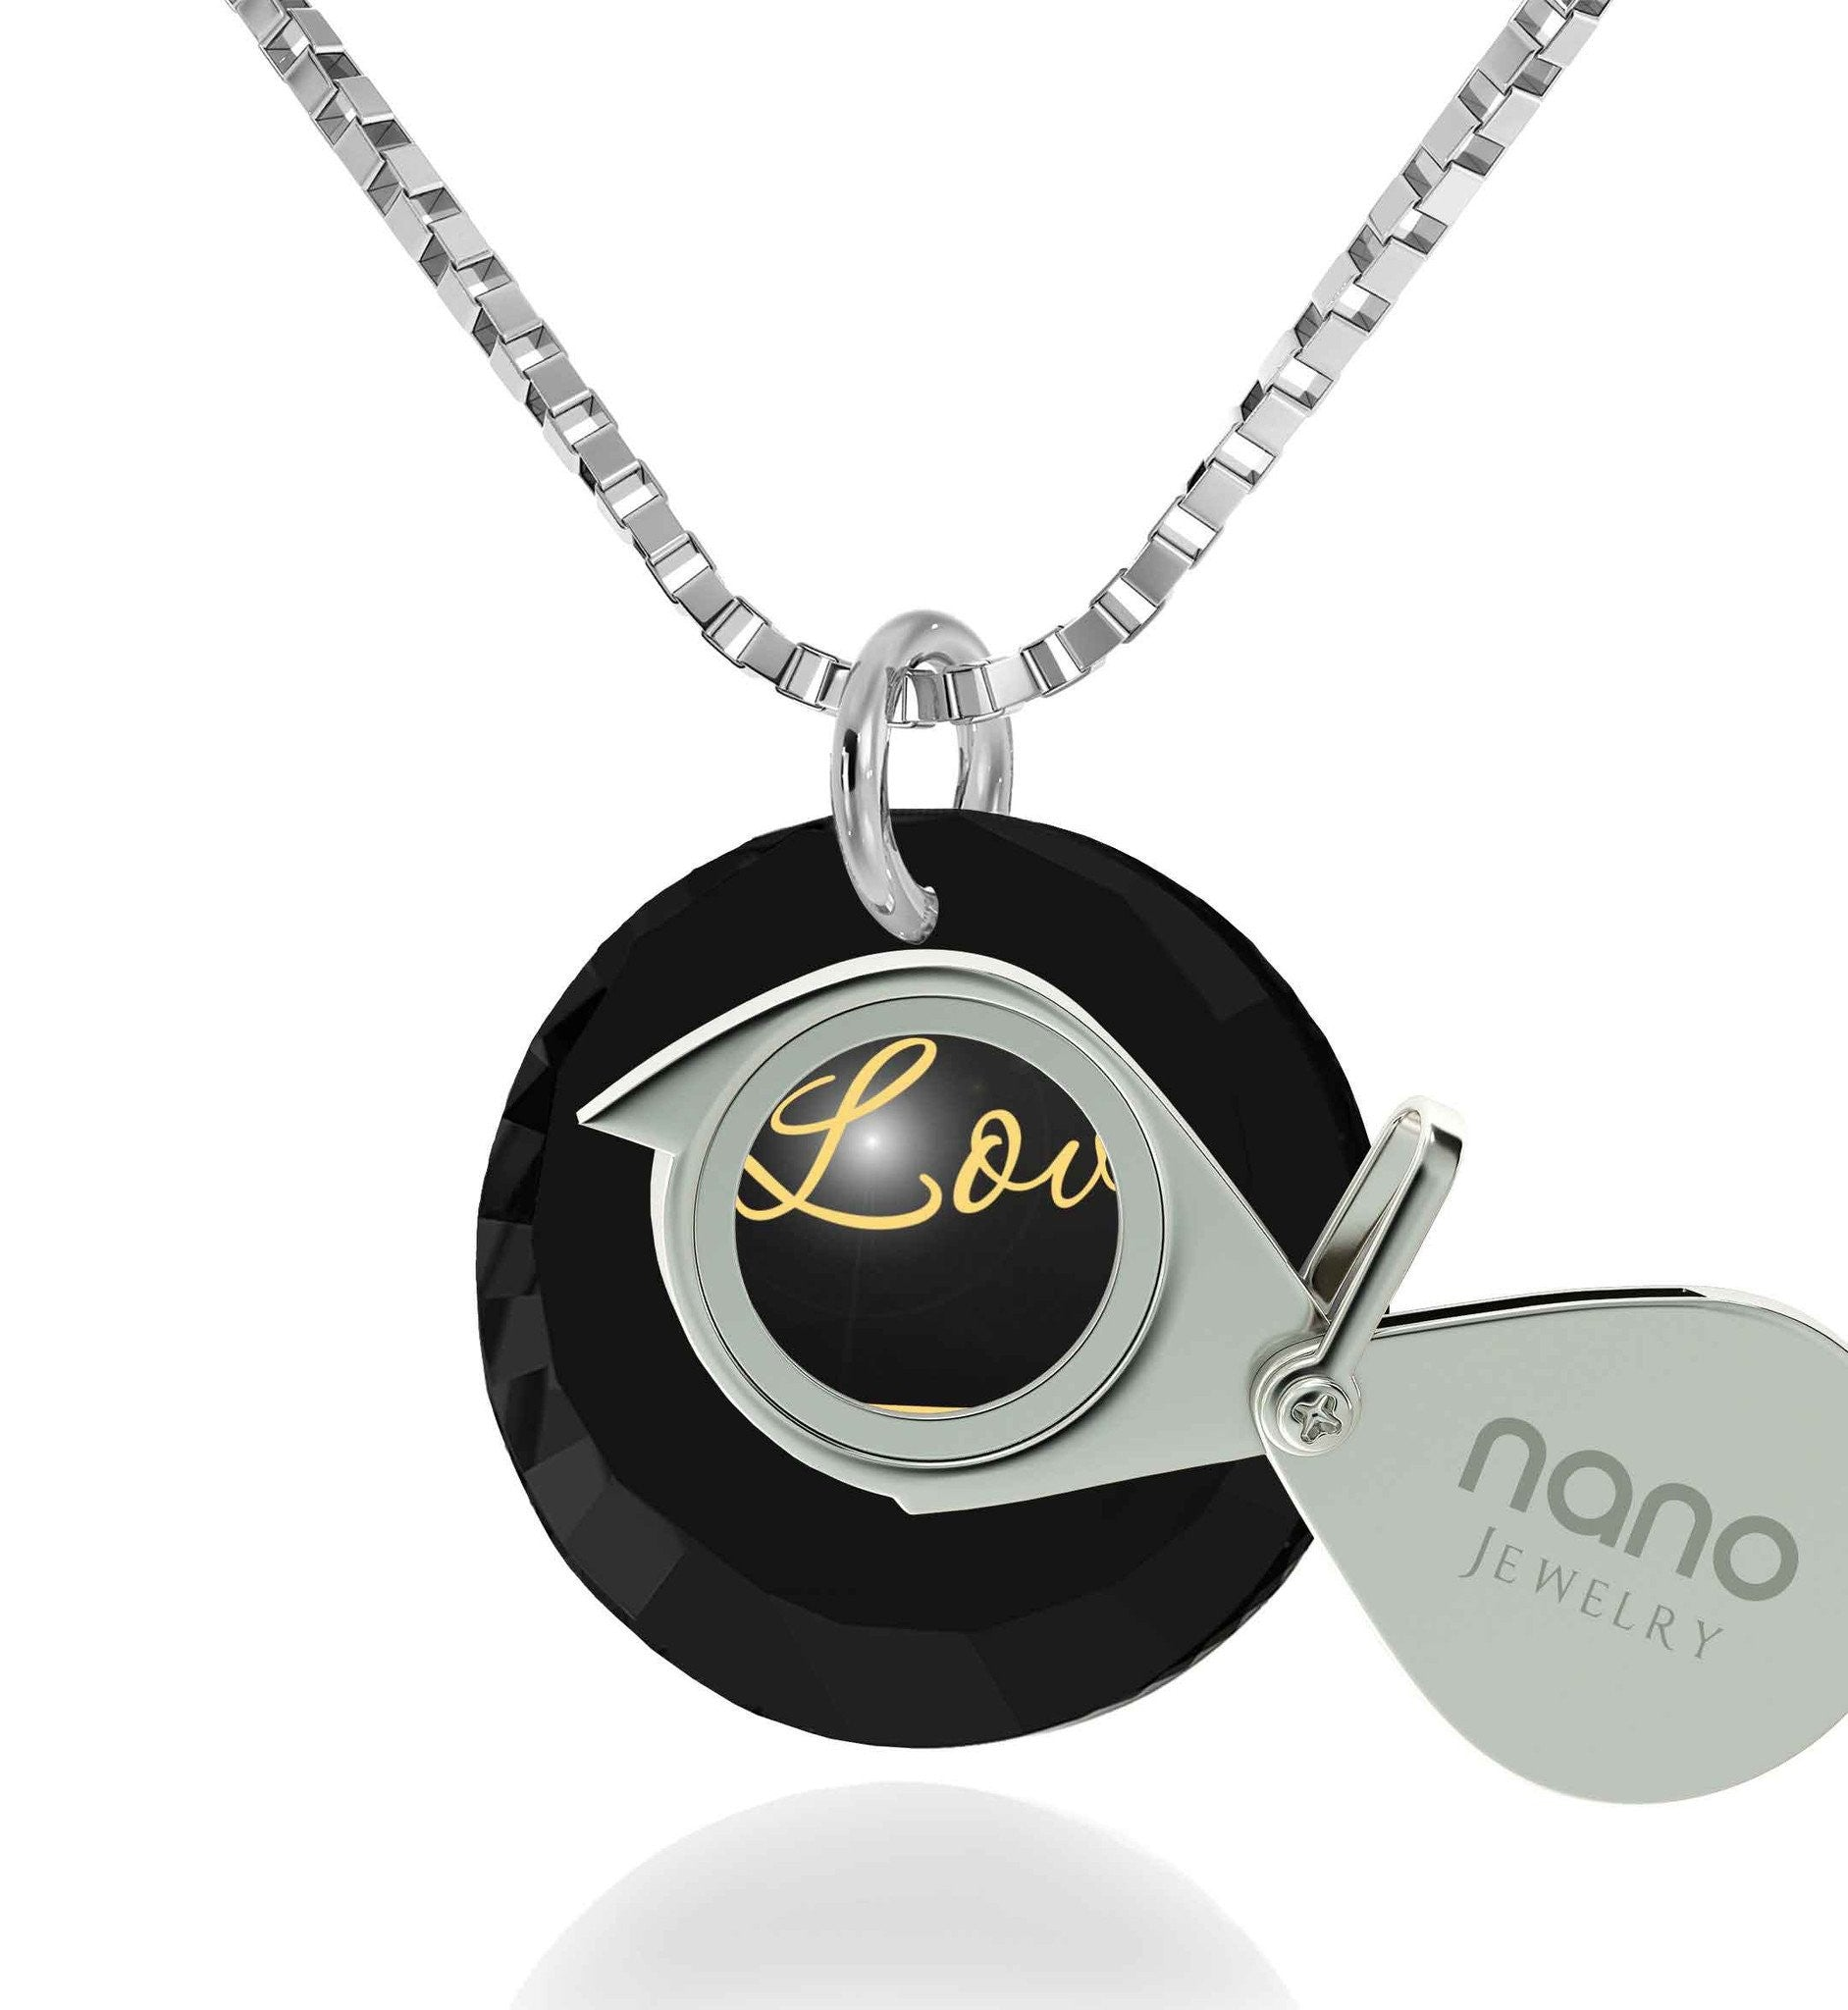 "Best Presents for Girlfriend,Sterling Silver,""I Love You Infinity"", Pure Romance Products, Nano Jewelry"